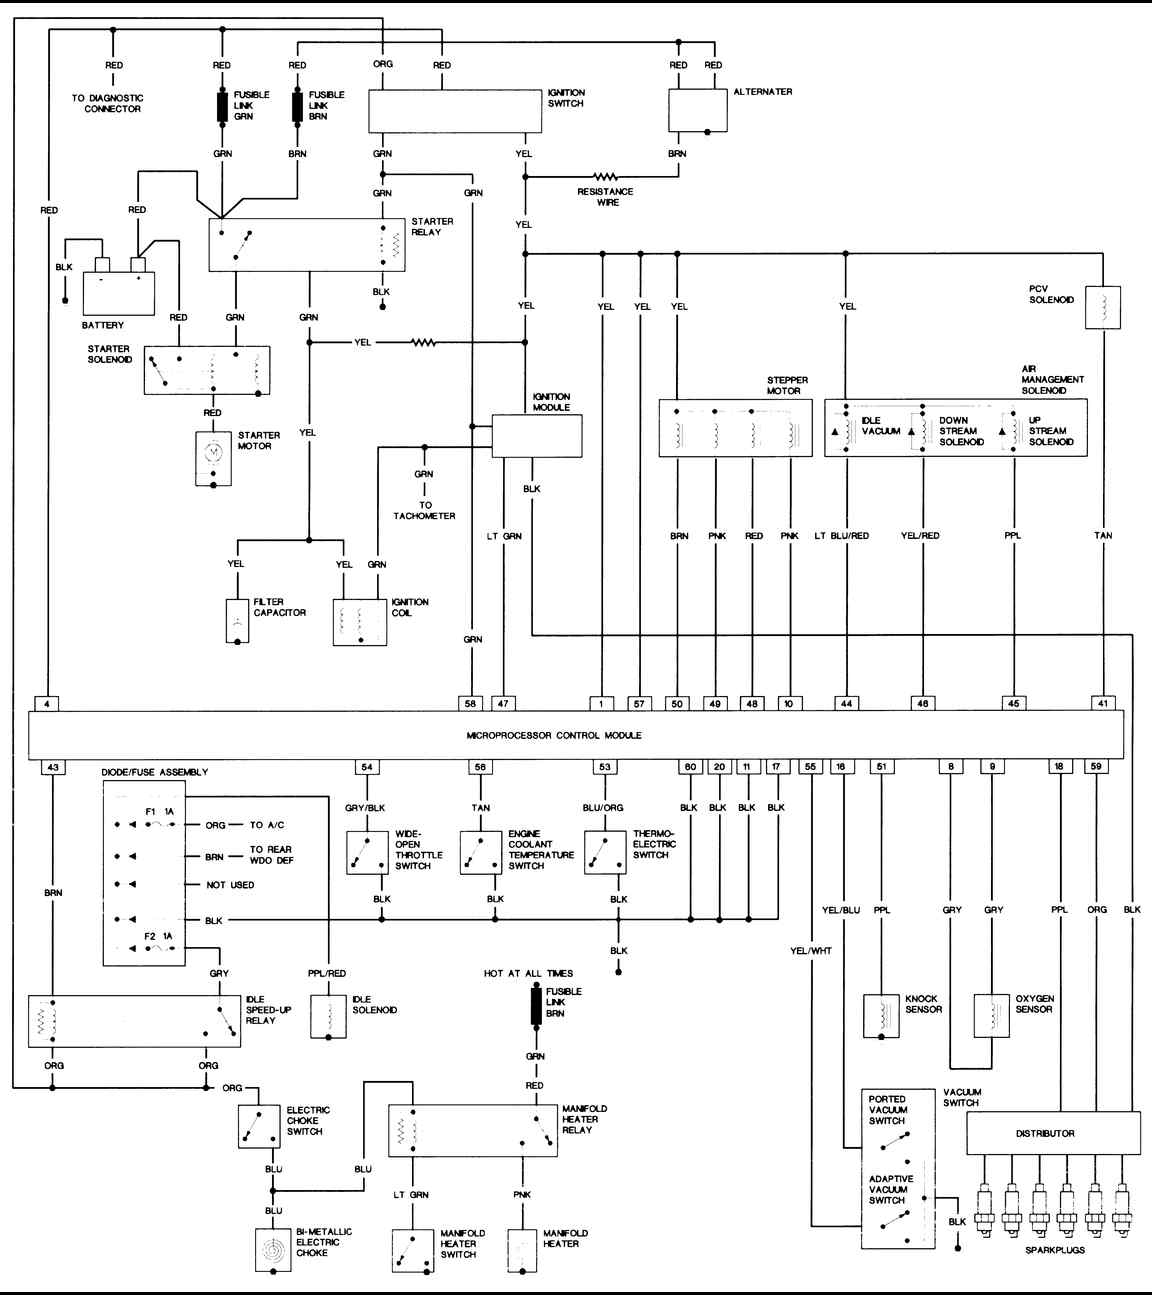 1971 Cj5 V6 Wiring - Ngs Wiring Diagram Cj V Wiring Diagram on camaro wiring diagram, cj5 hardtop, defender 90 wiring diagram, cj7 wiring diagram, ramcharger wiring diagram, land cruiser wiring diagram, yukon wiring diagram, mustang wiring diagram, renegade wiring diagram, regal wiring diagram, grand wagoneer wiring diagram, amx wiring diagram, cj3b wiring diagram, cj2a wiring diagram, simple chopper wiring diagram, concord wiring diagram, m38a1 wiring diagram, yj wiring diagram, willys wiring diagram,